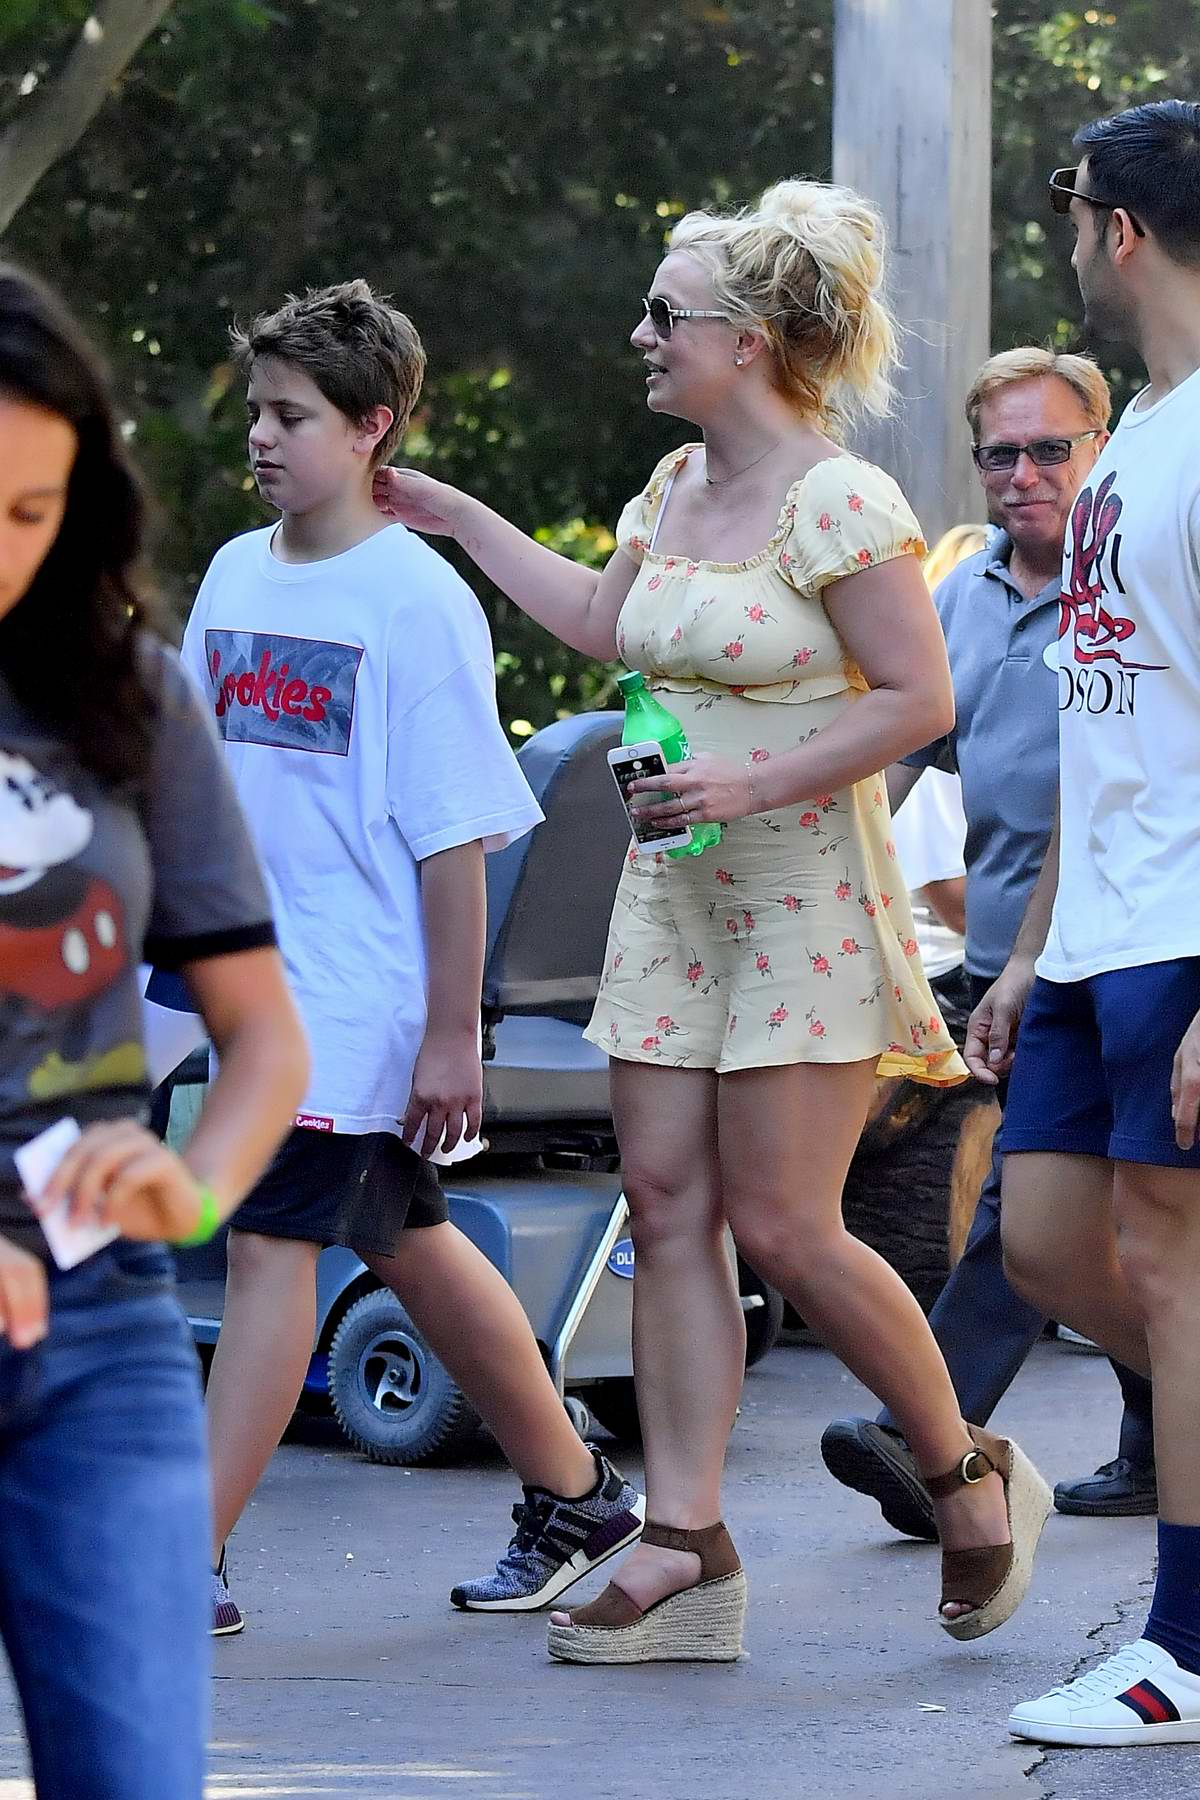 britney spears enjoys a day out at disneyland with her ...